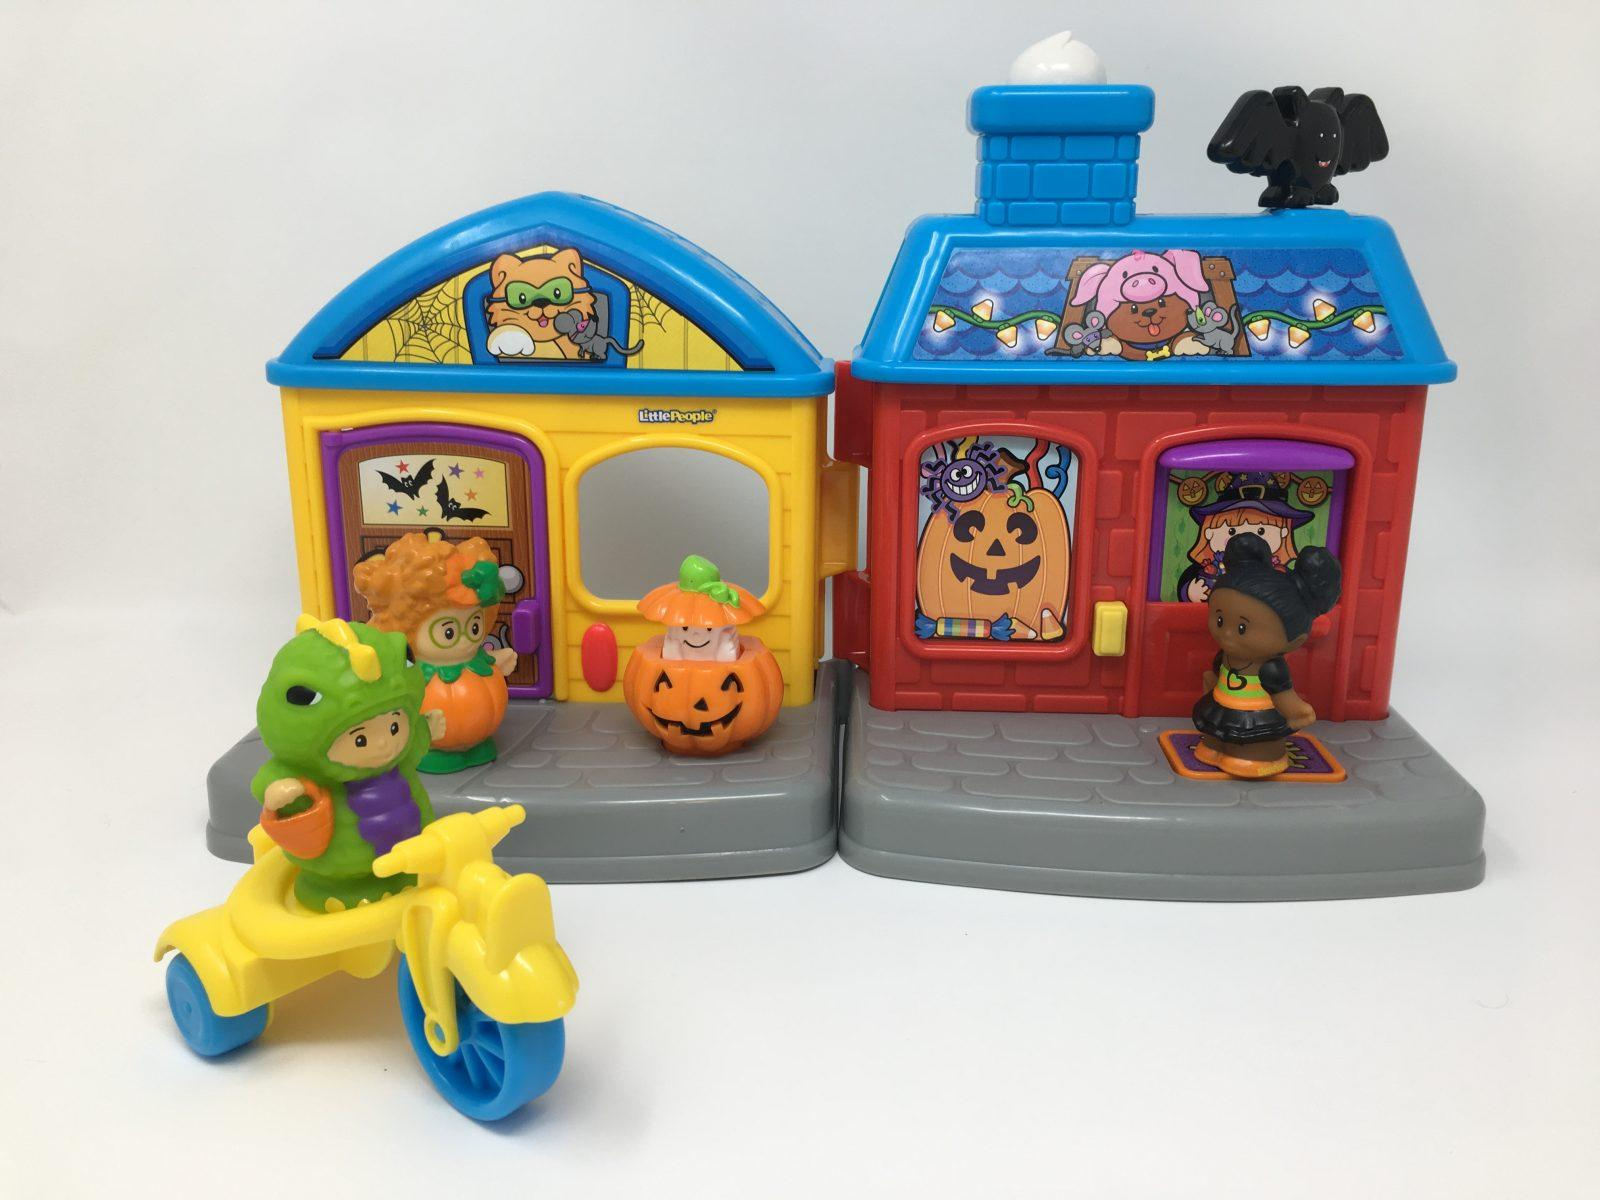 Super Cool Rare Toys - Little People Trick-or-Treat Surprise